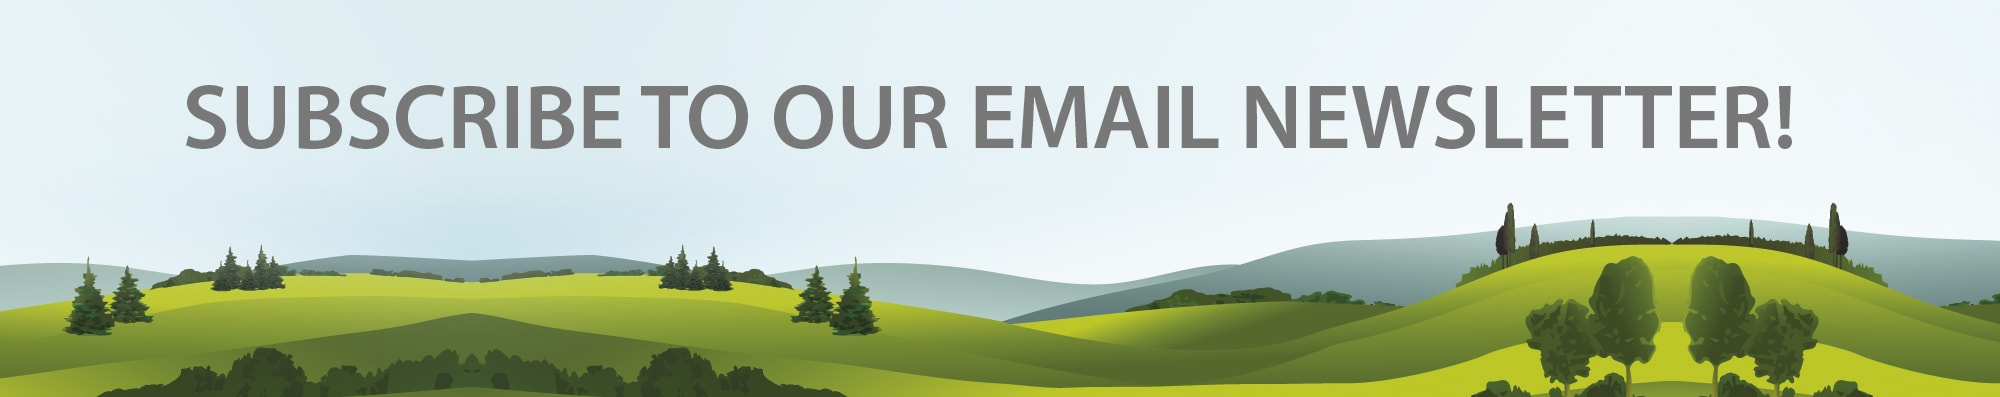 Subscribe to our email newsletter banner